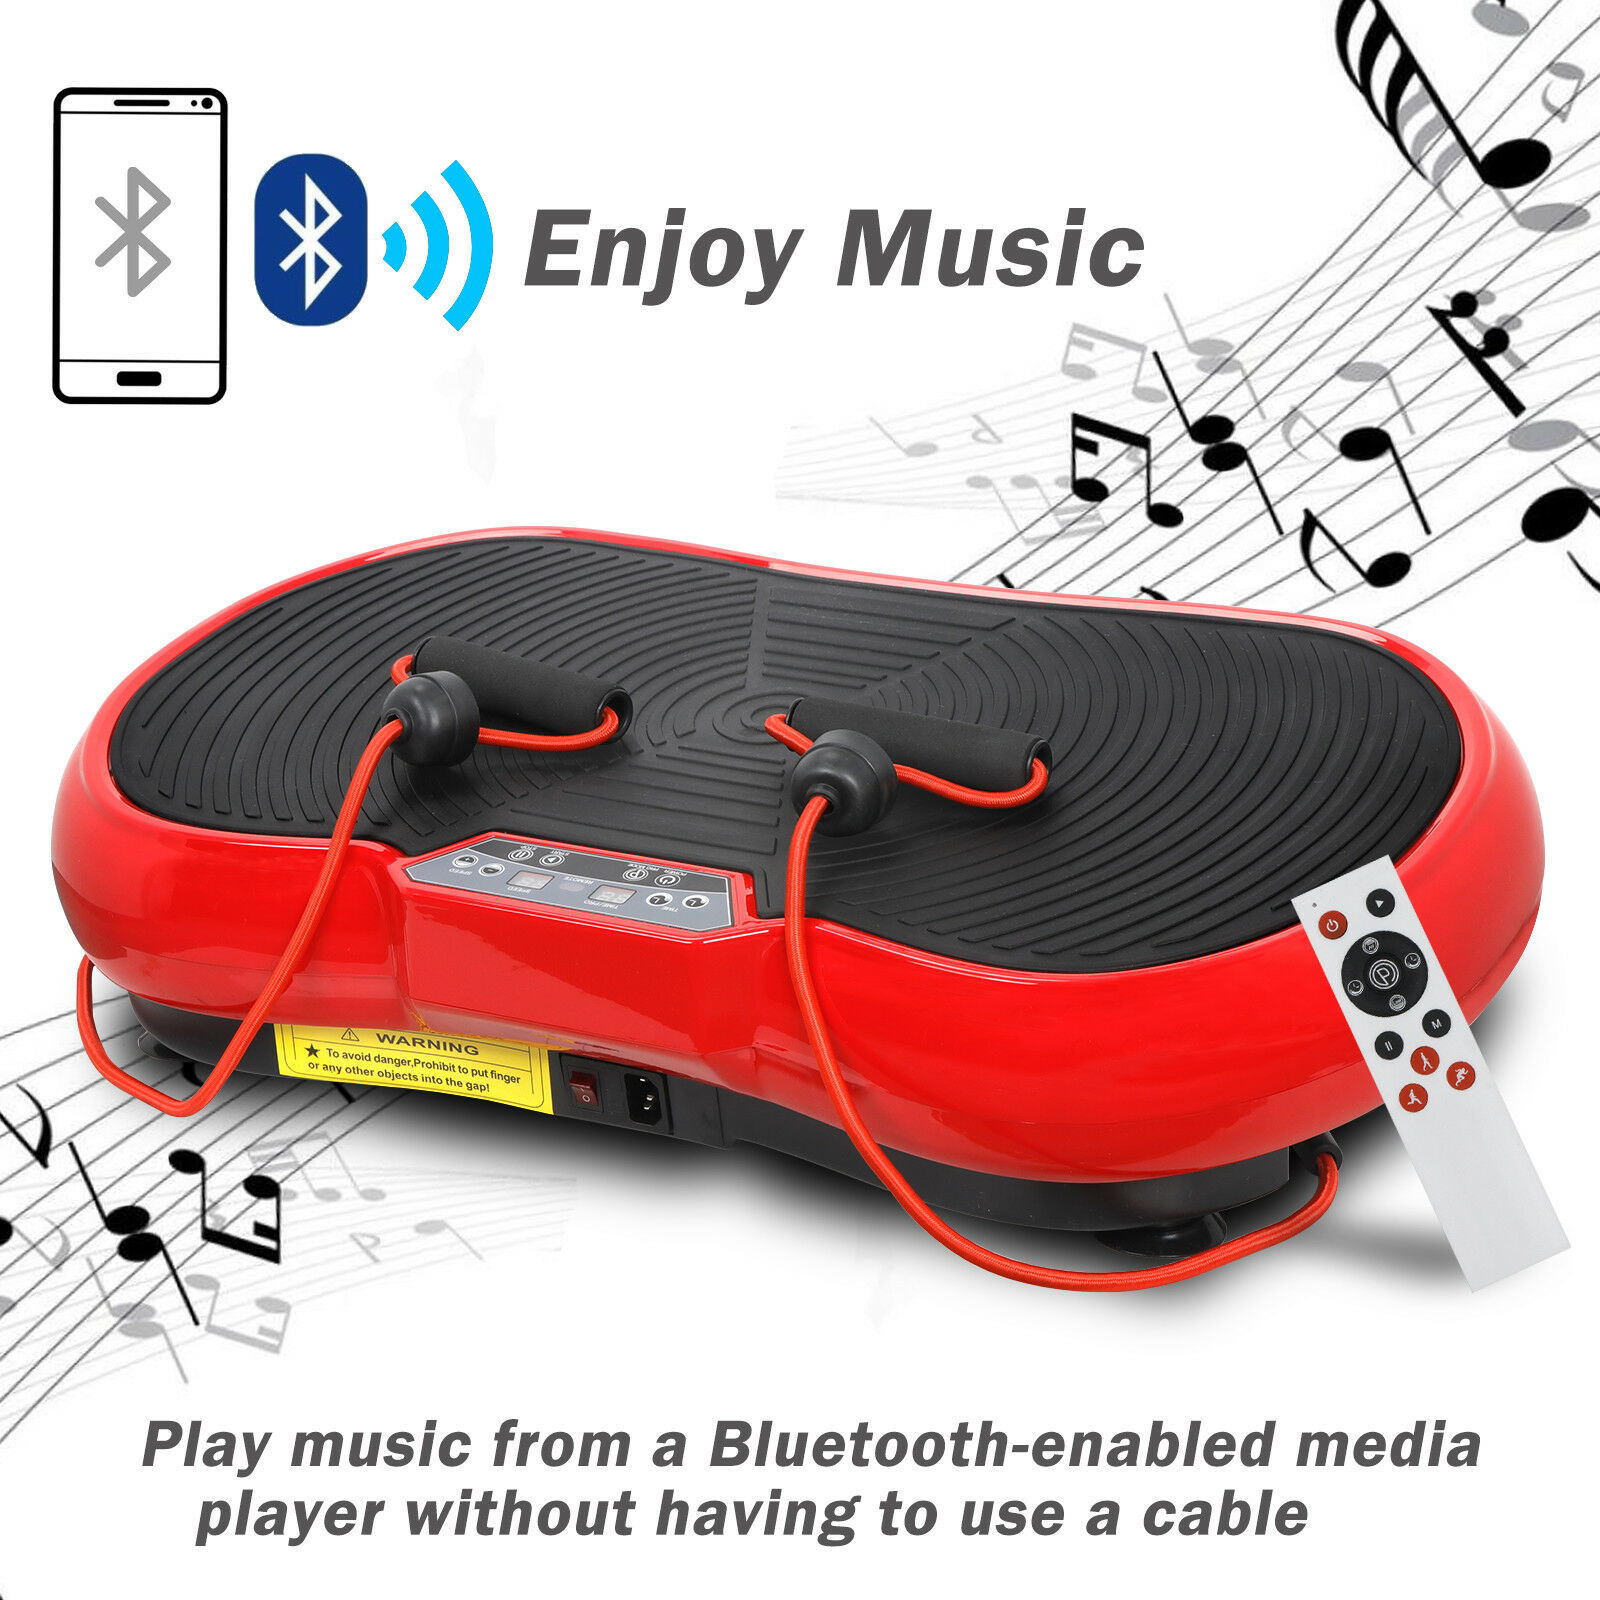 Vibration Plate Whole Body Exercise Trainer Machine Platform Massager RED Health & Beauty